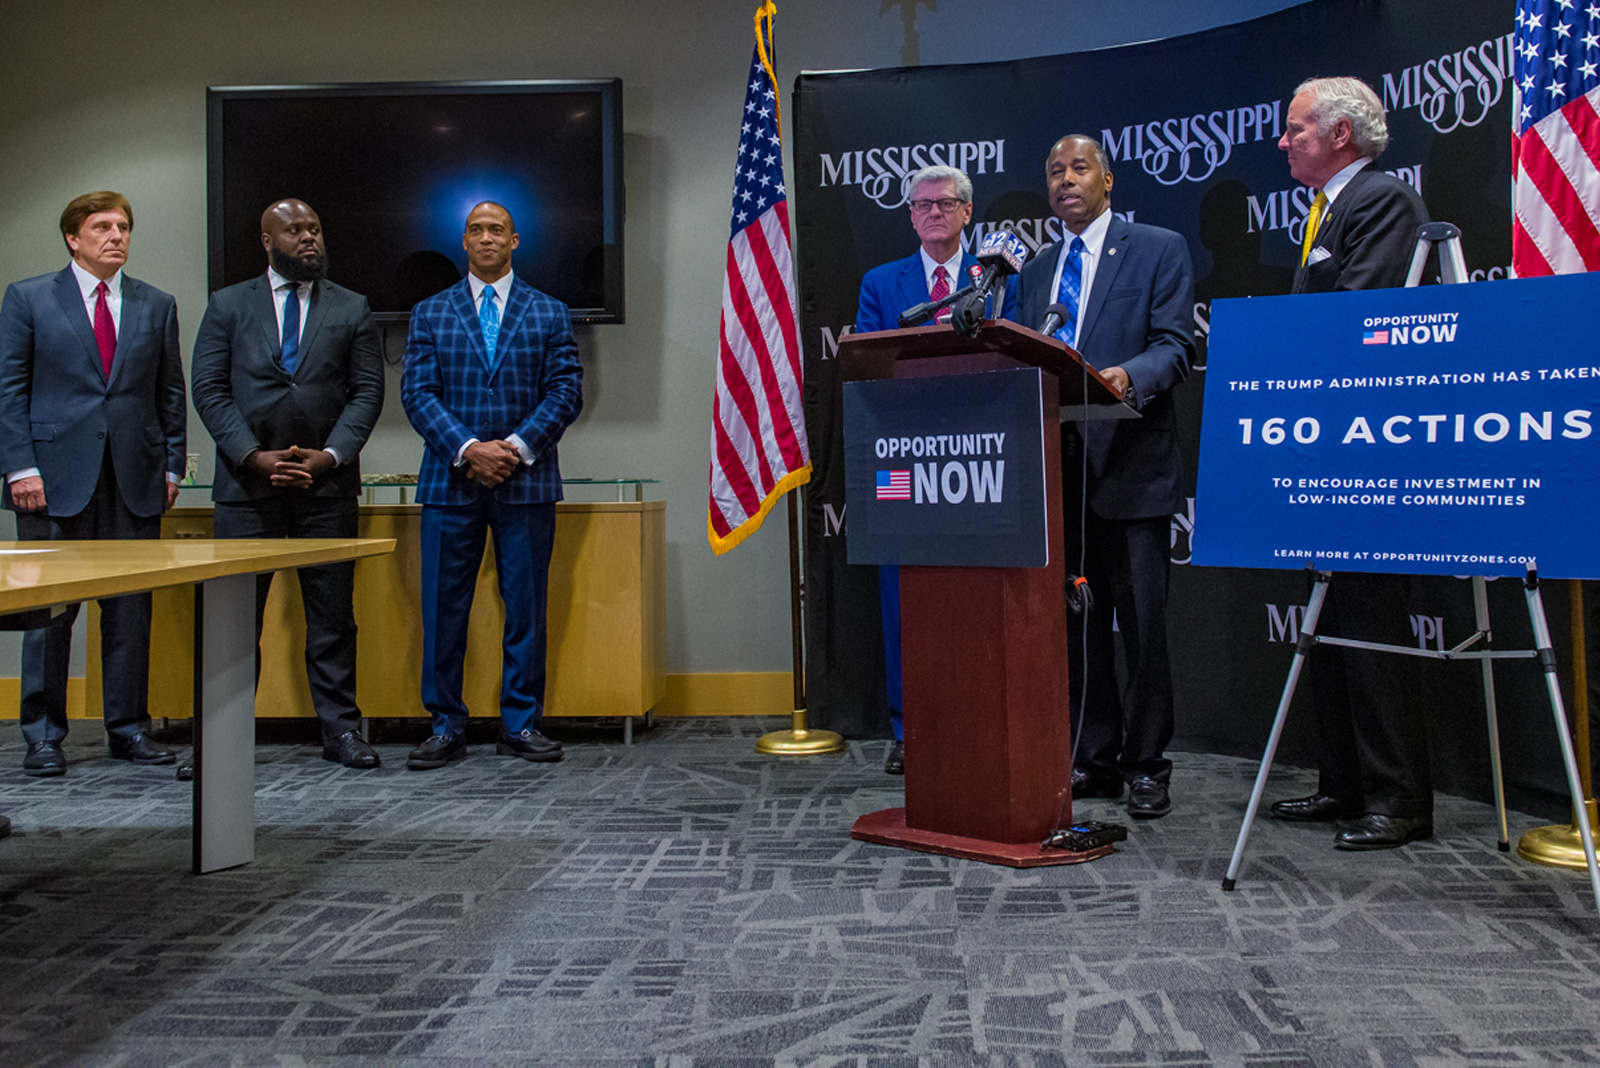 Secretary Carson, joined by Governors Phil Bryant and Henry McMaster, announces 160 actions taken by the White House Opportunity and Revitalization Council to encourage investment in low-income communities